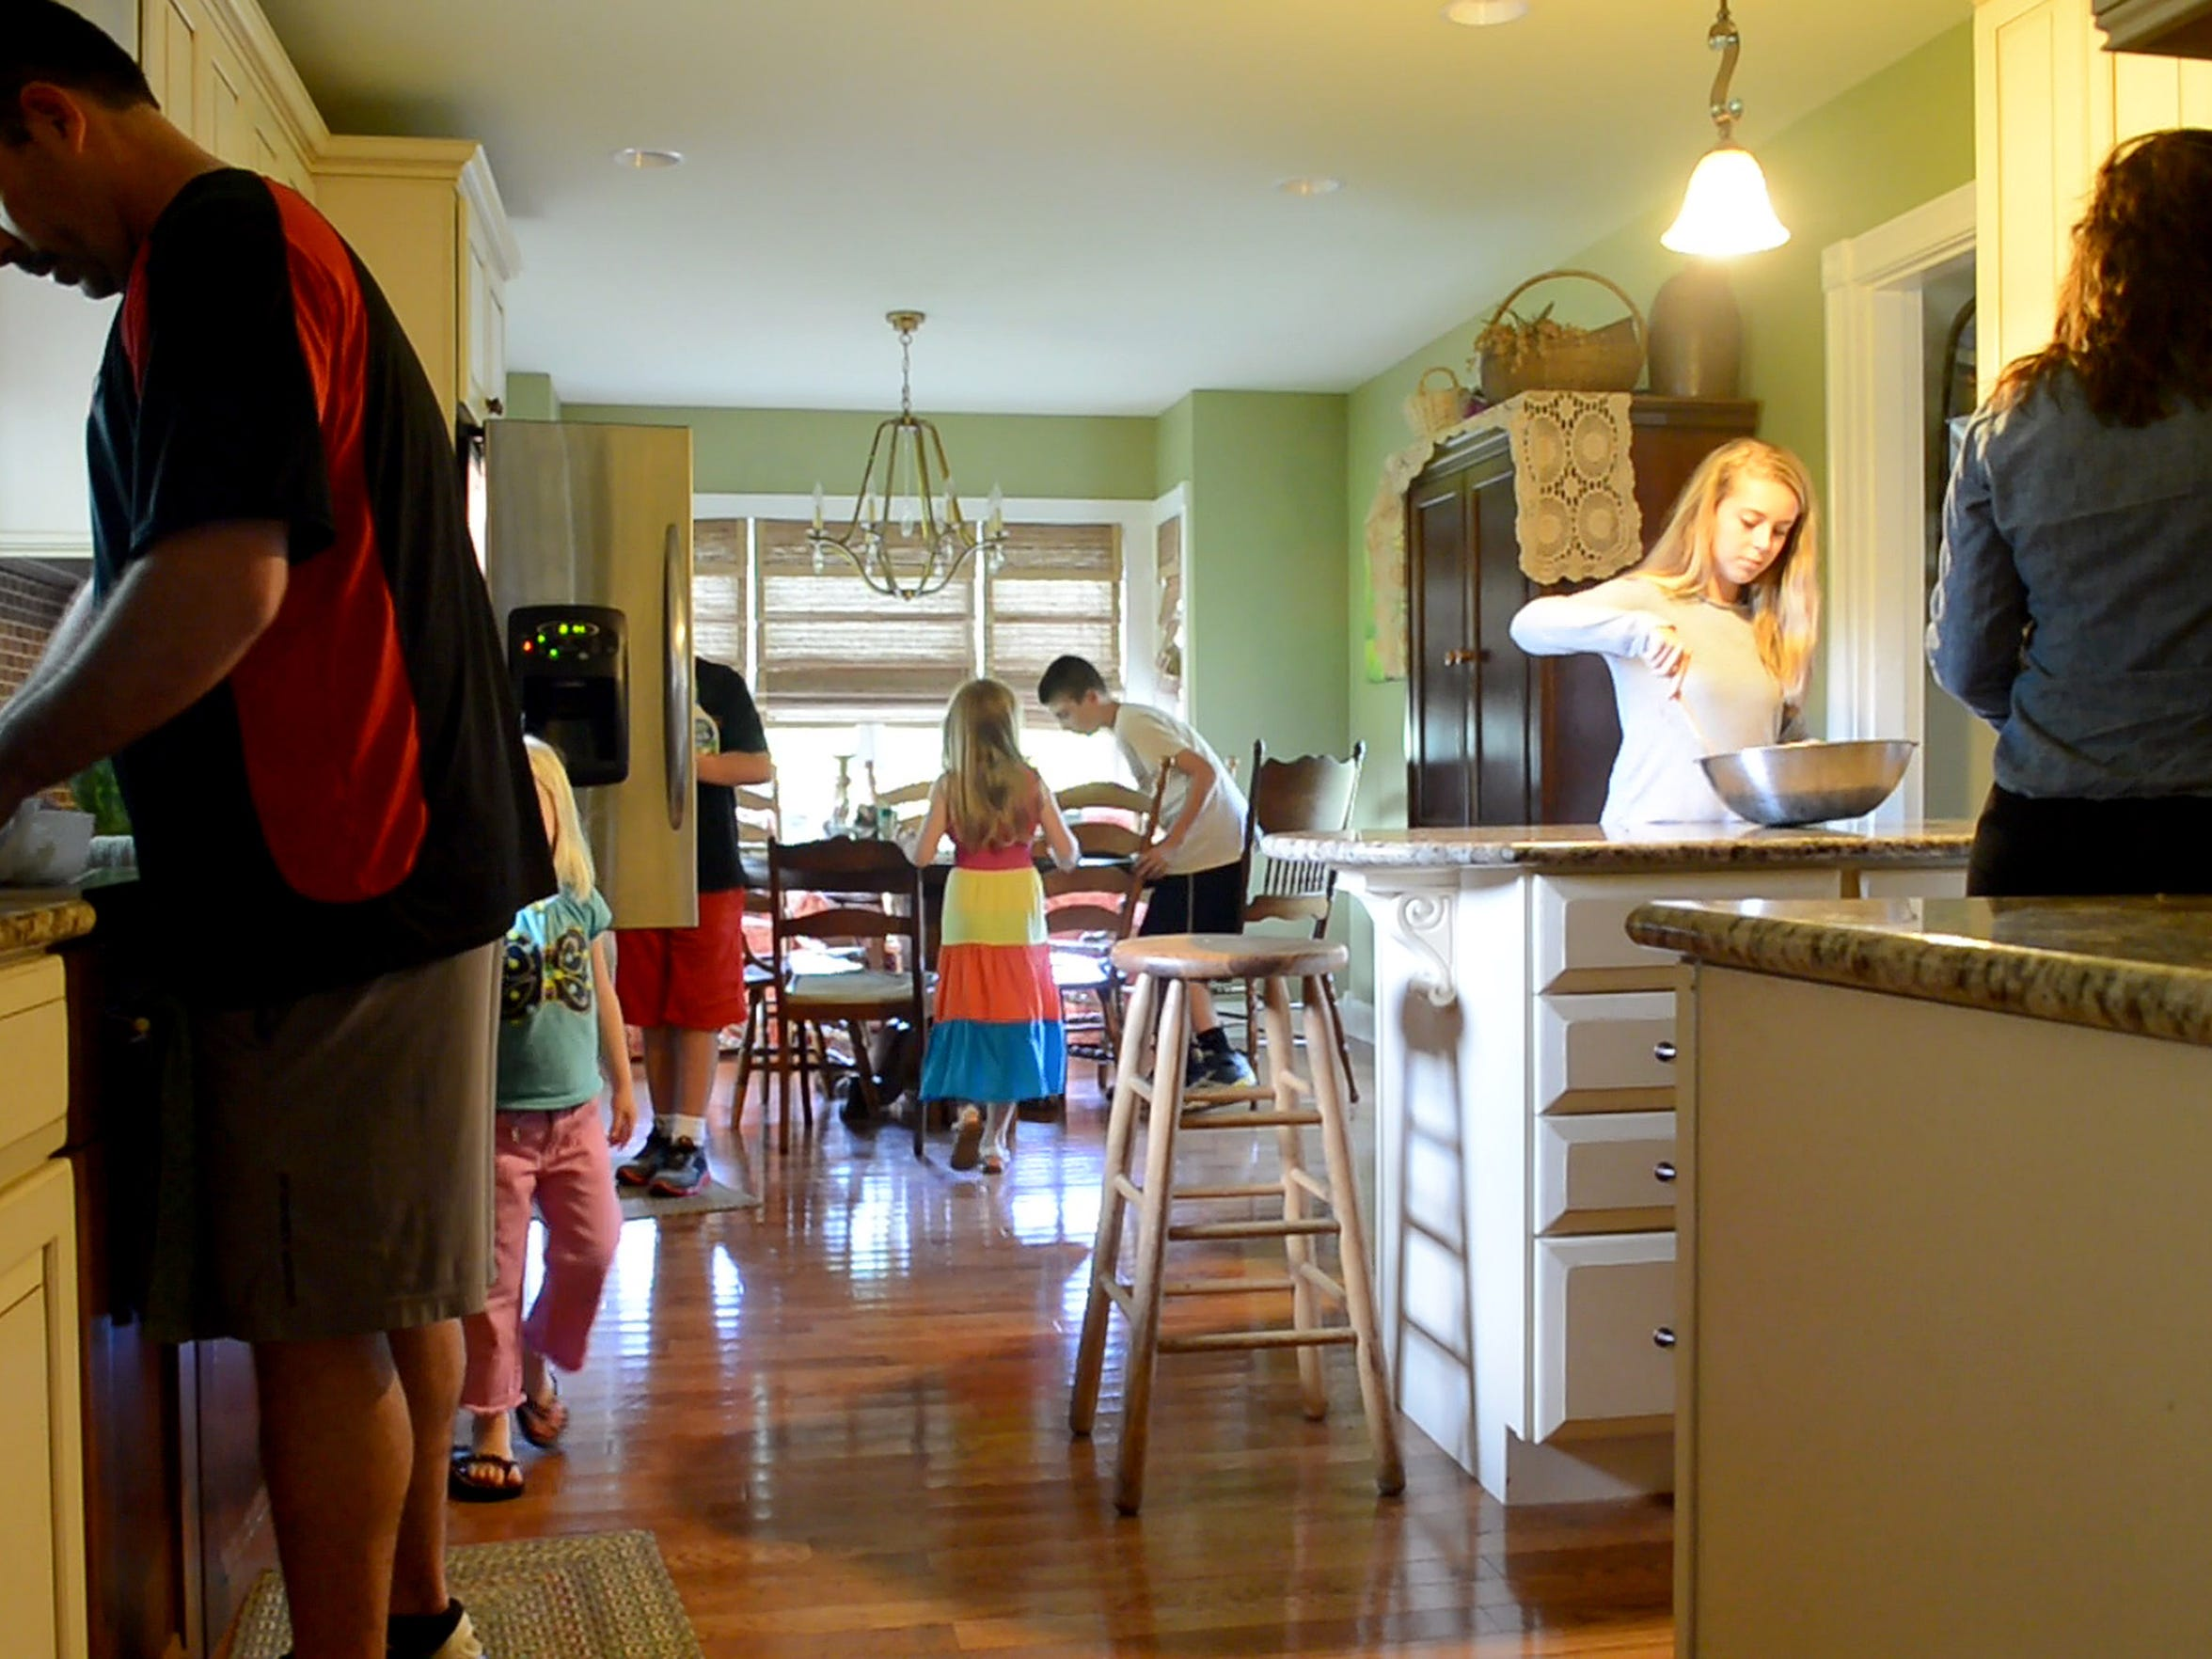 Mary Jordan (right), 14, works with the salad as her family prepares for dinner at their family home near Waynesboro on Monday, May 20, 2013.  Both Jeff and Lisa Jordan's natural born and adopted children come together to form one family.